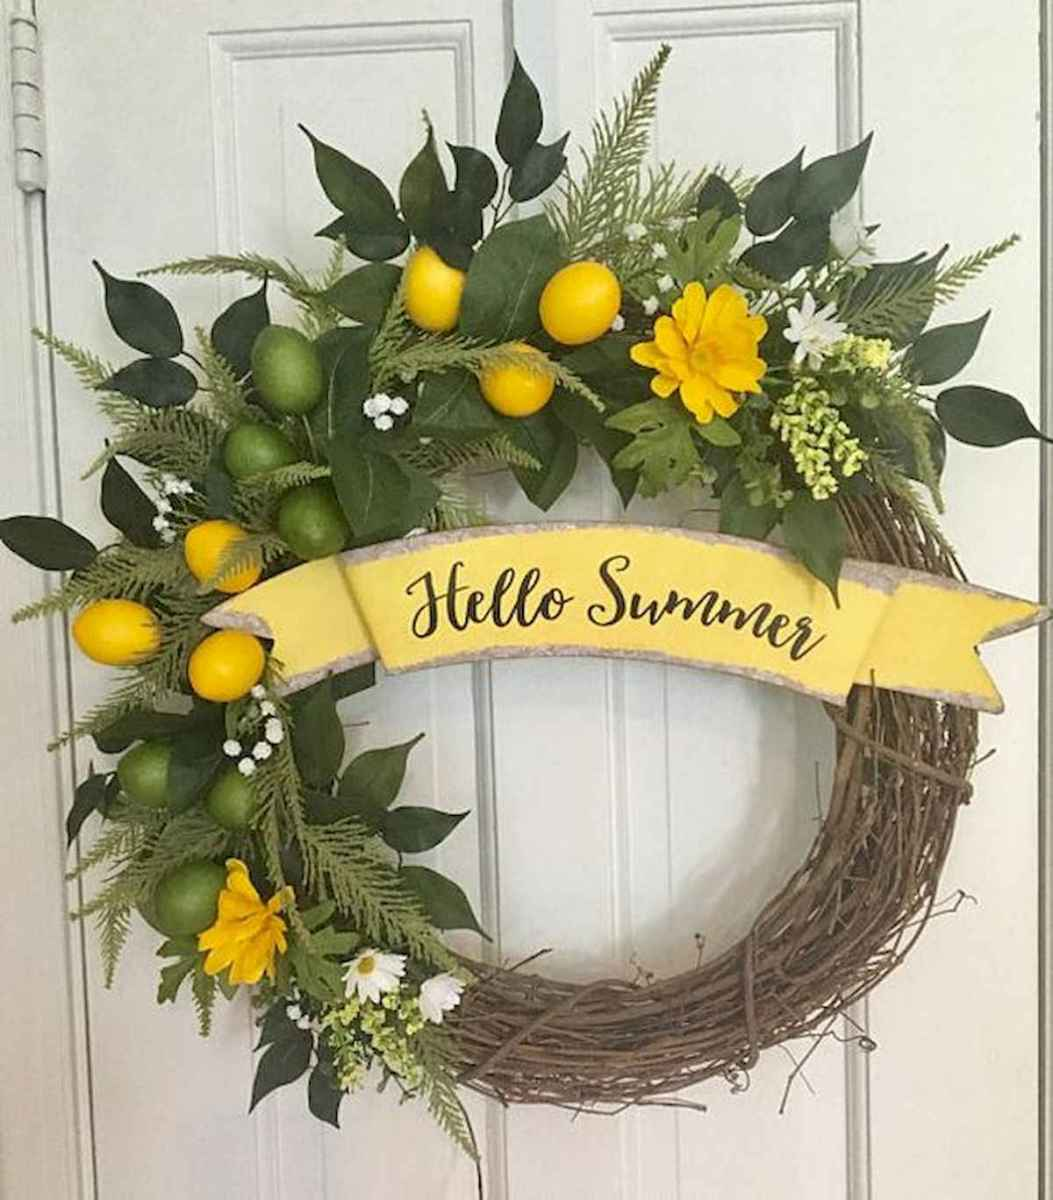 60 Favorite Spring Wreaths for Front Door Design Ideas And Decor (5)